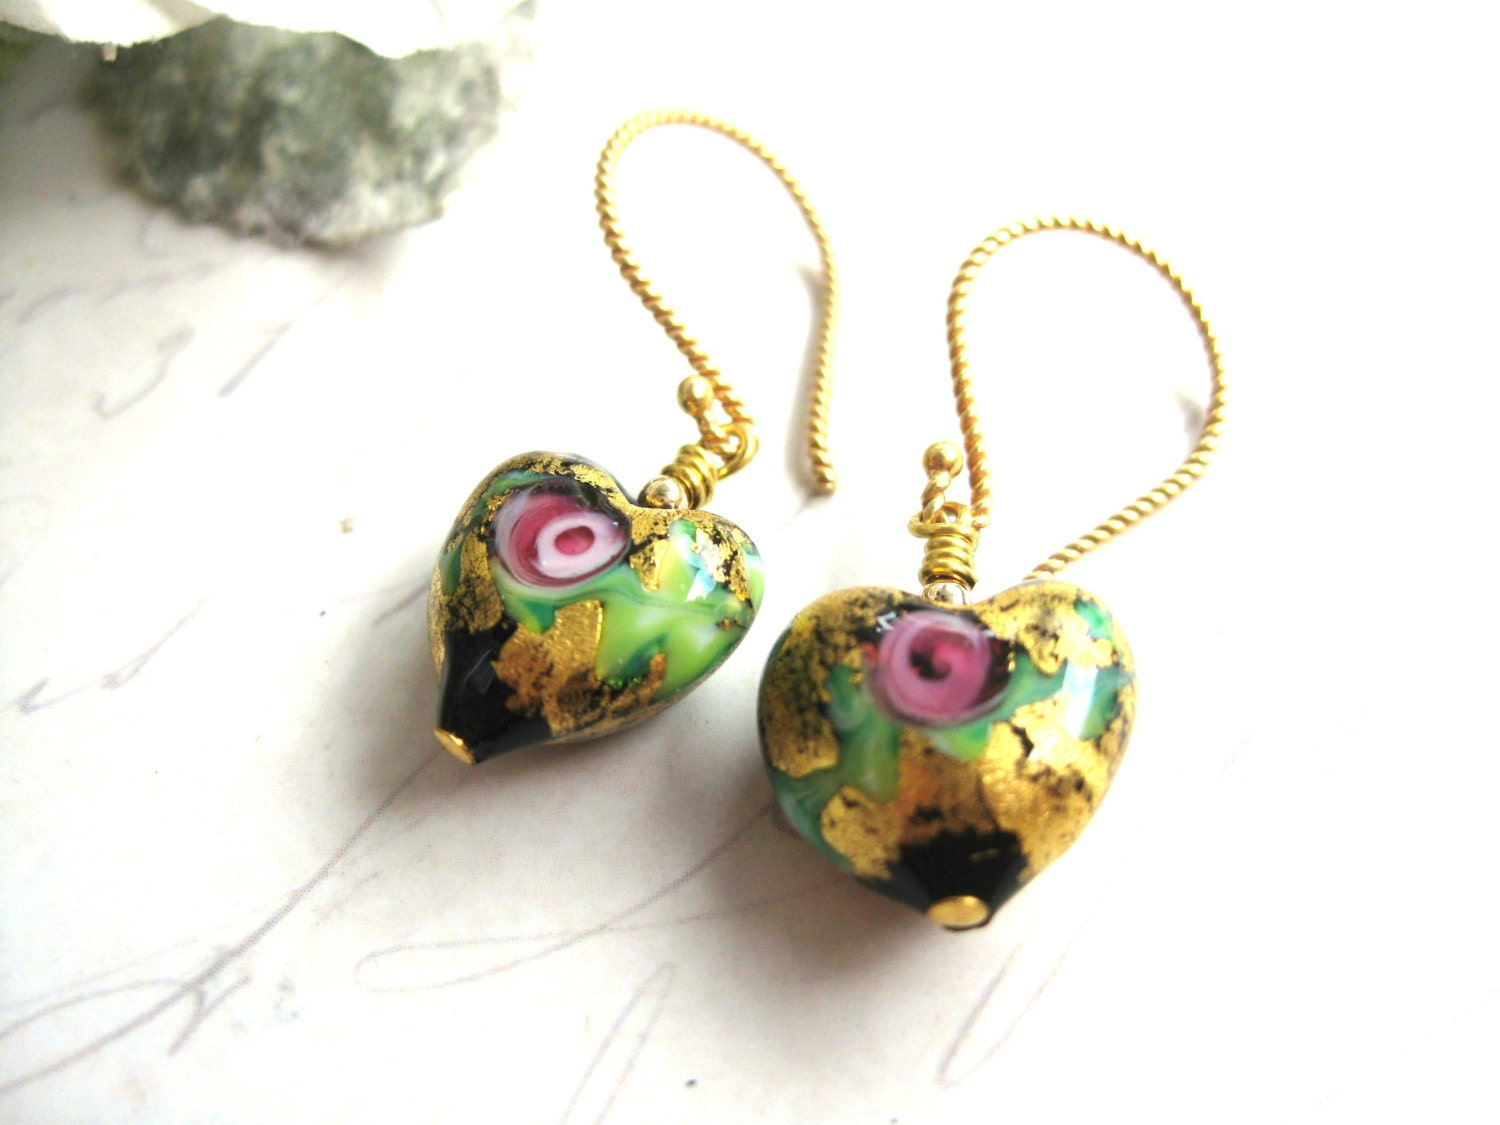 Stunning black and gold Venetian 13mm puffed hearts exquisitely decorated on 14kt gold Vermeil wires